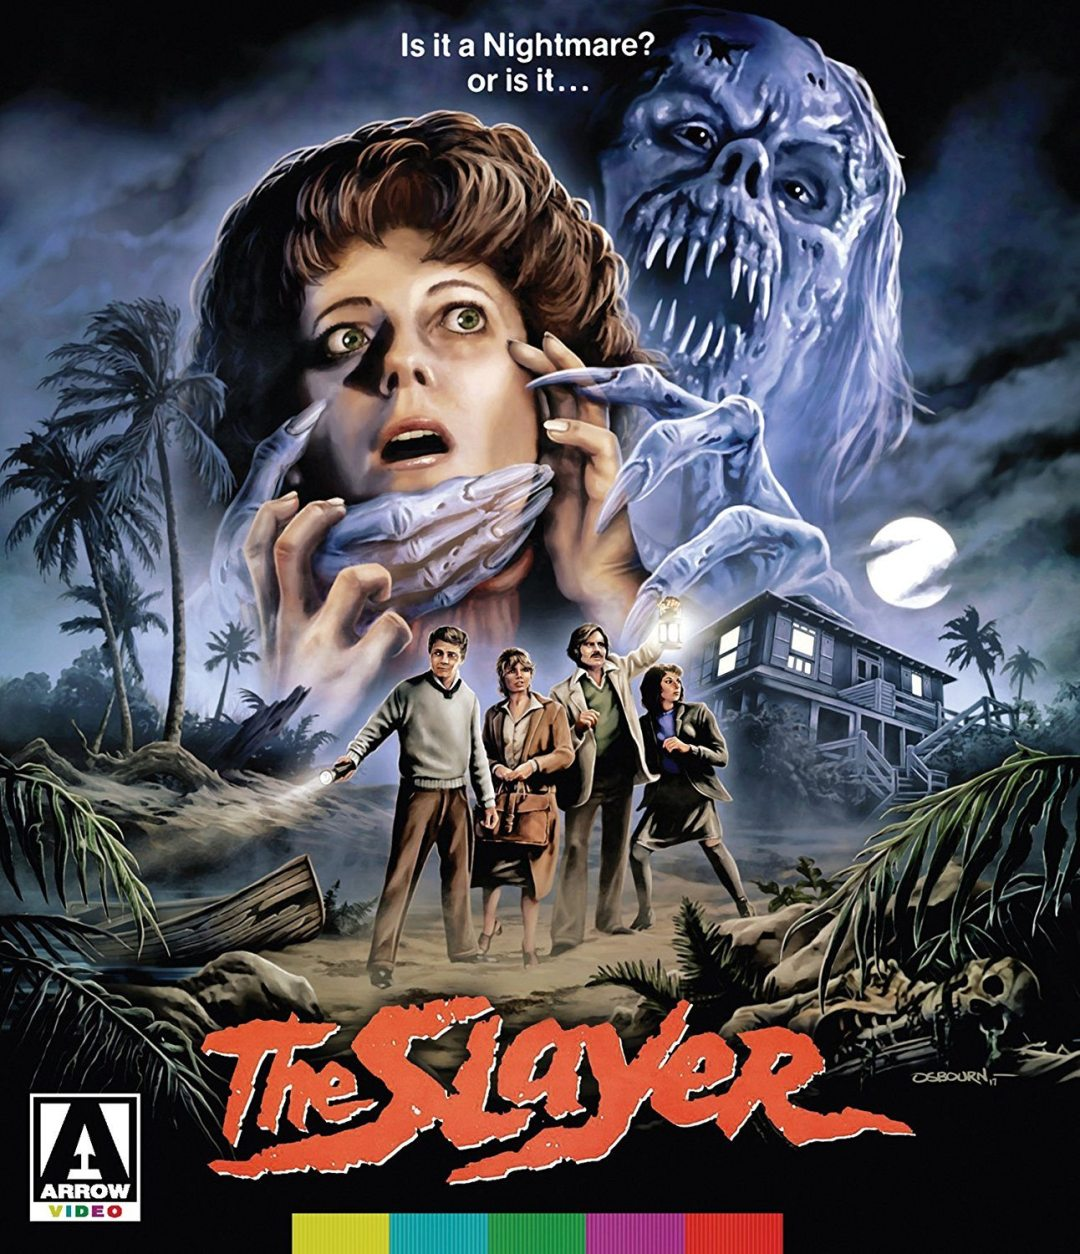 The Slayer – Blu-ray/DVD Review